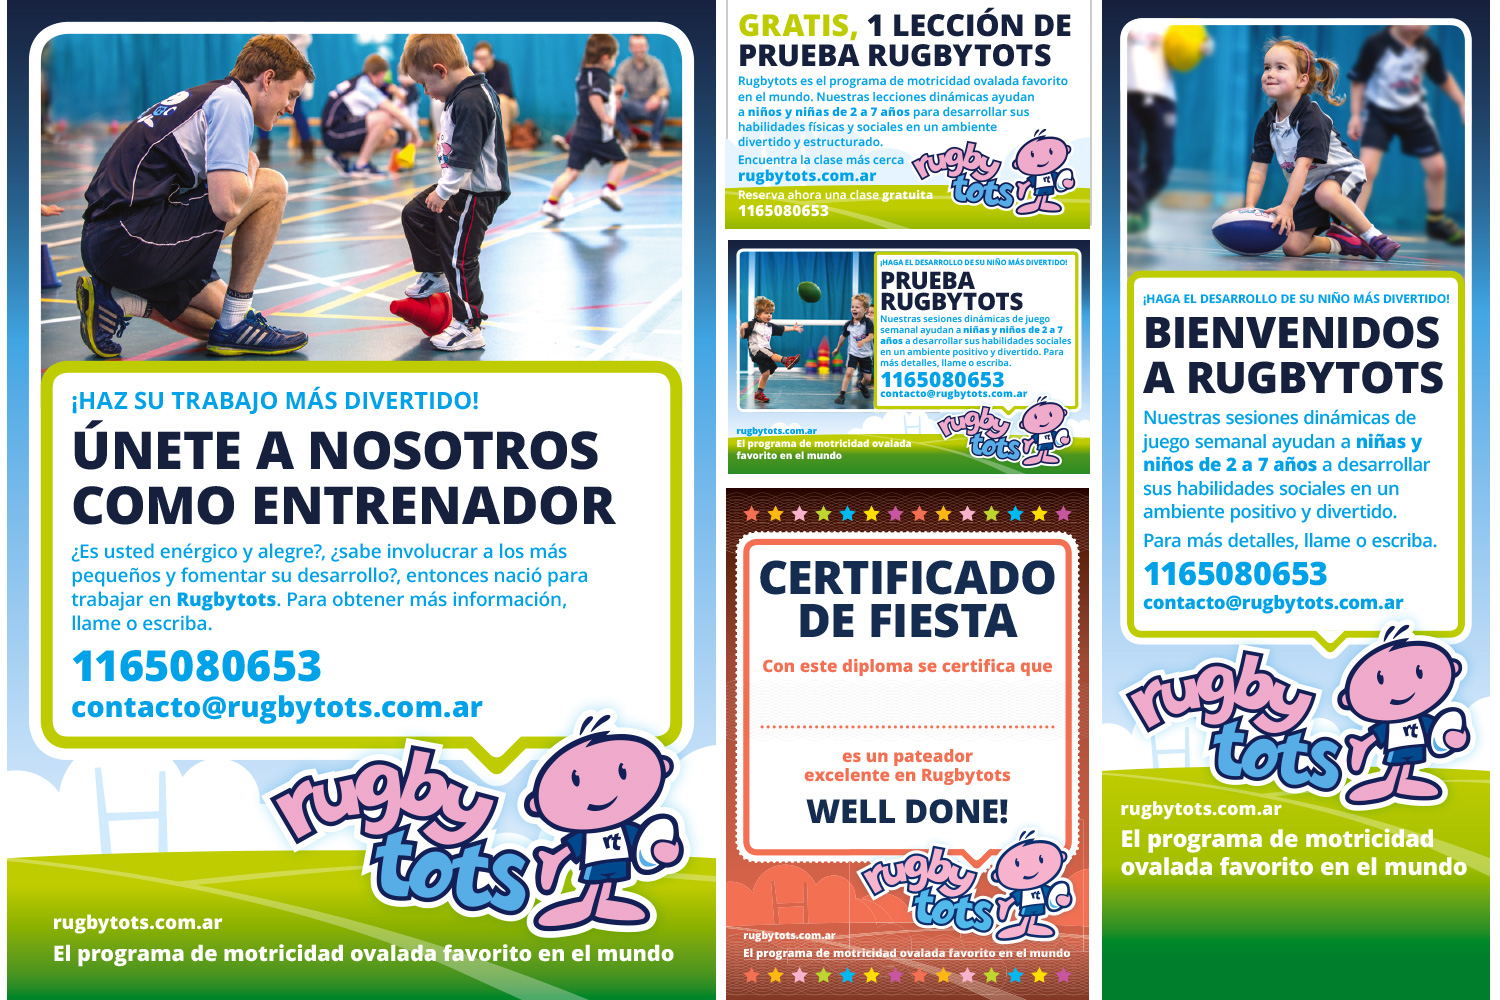 Rugbytots marketing materials in Spanish